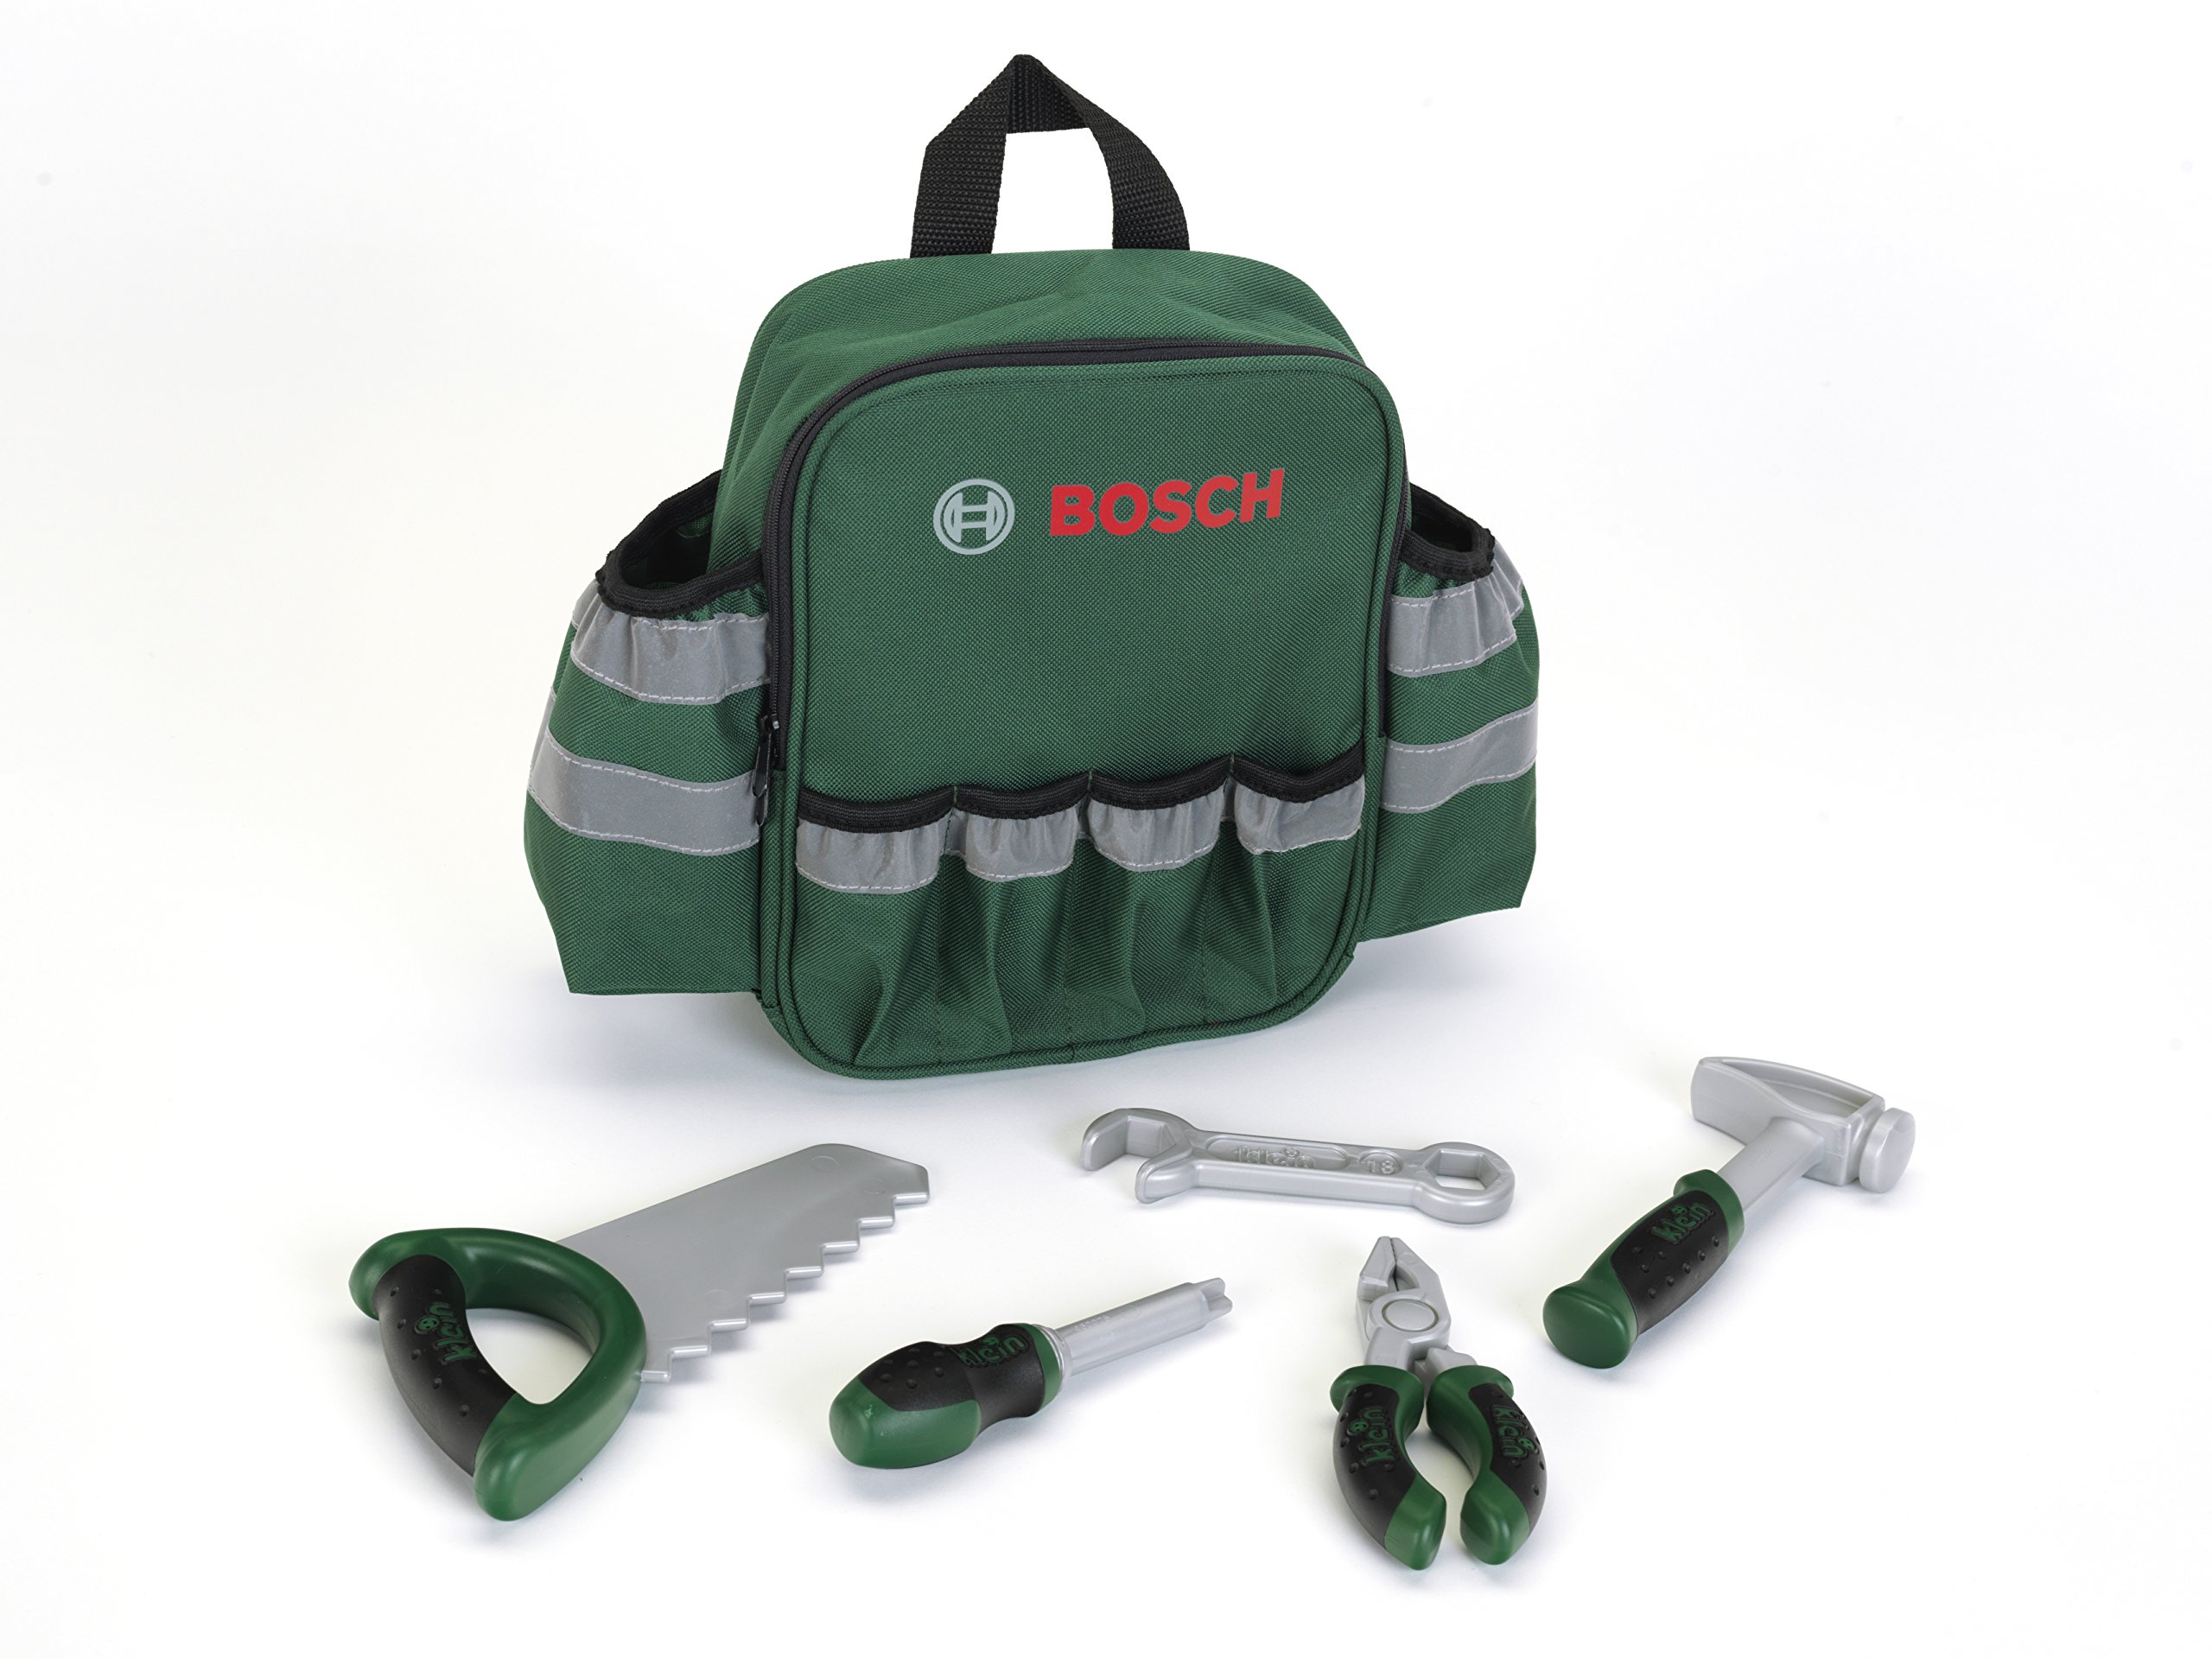 Theo Klein 8326 Bosch Rucksack with Tools, Toy, Multi-Colored